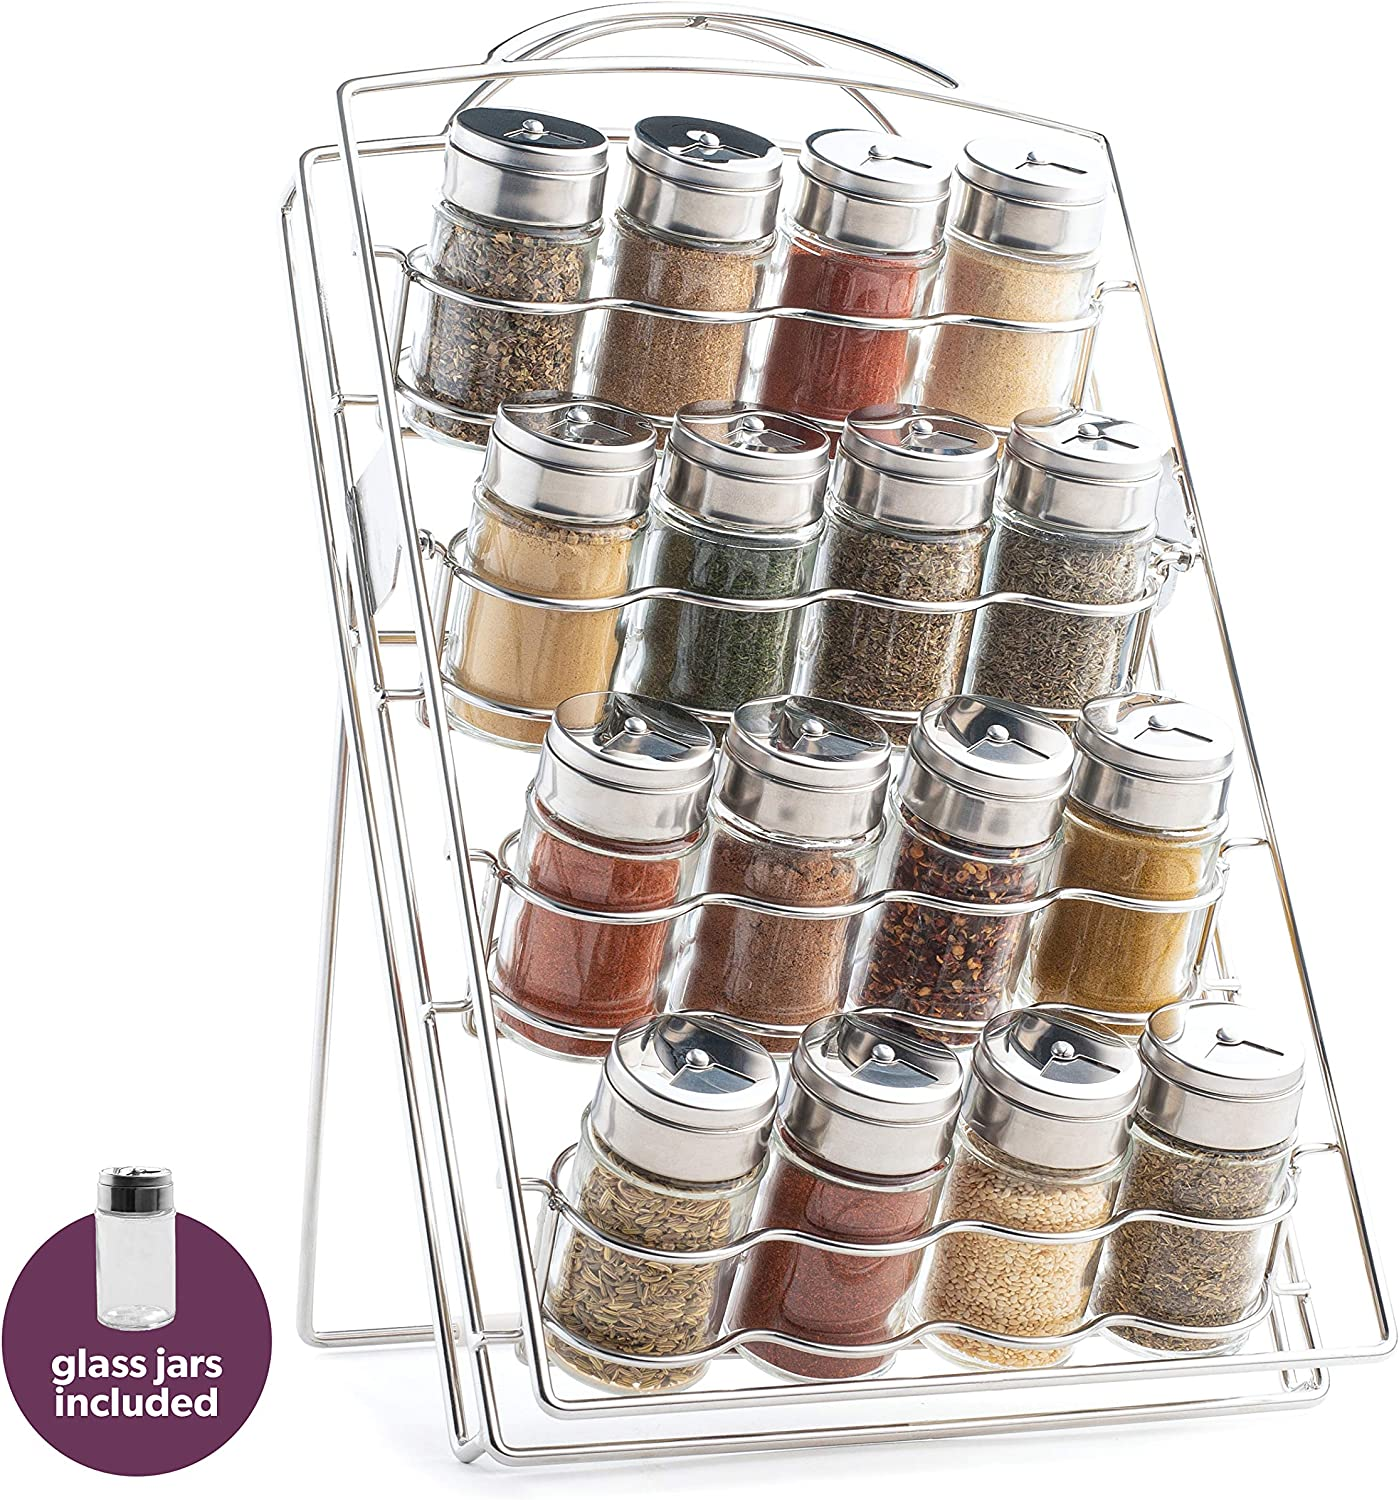 Inclined Spice Rack - 16 Jars Included - Seasoning Organizer & Storage Stand for Countertop or Cabinet   The Wire Collection, Chrome